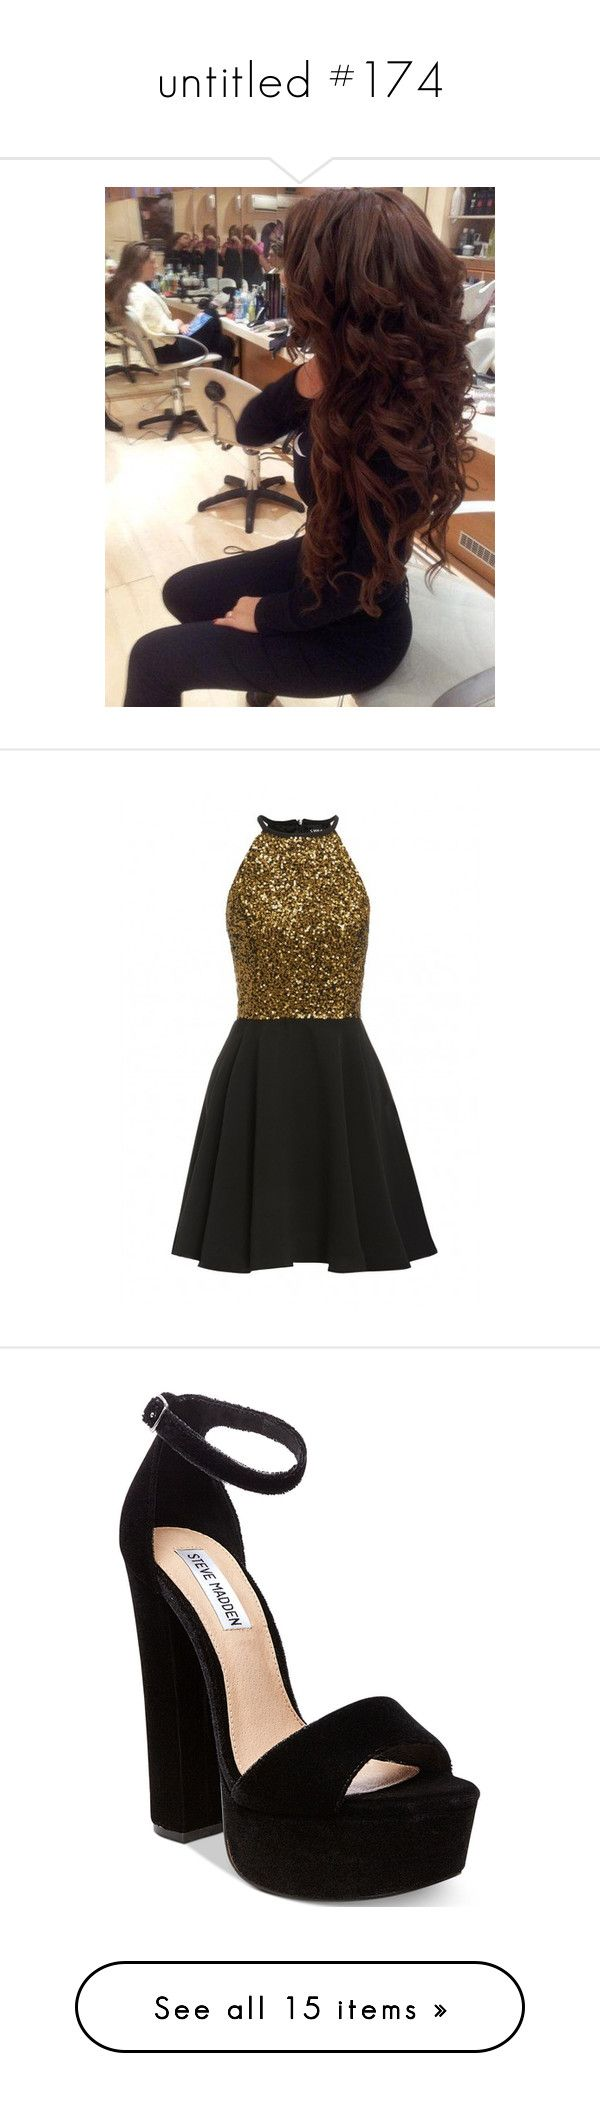 """""""untitled #174"""" by aj-mounger ❤ liked on Polyvore featuring beauty products, haircare, hair styling tools, dresses, vestidos curto, gold dress, sparkly party dresses, gold sequin dress, gold sparkly dress and gold sequin cocktail dress"""